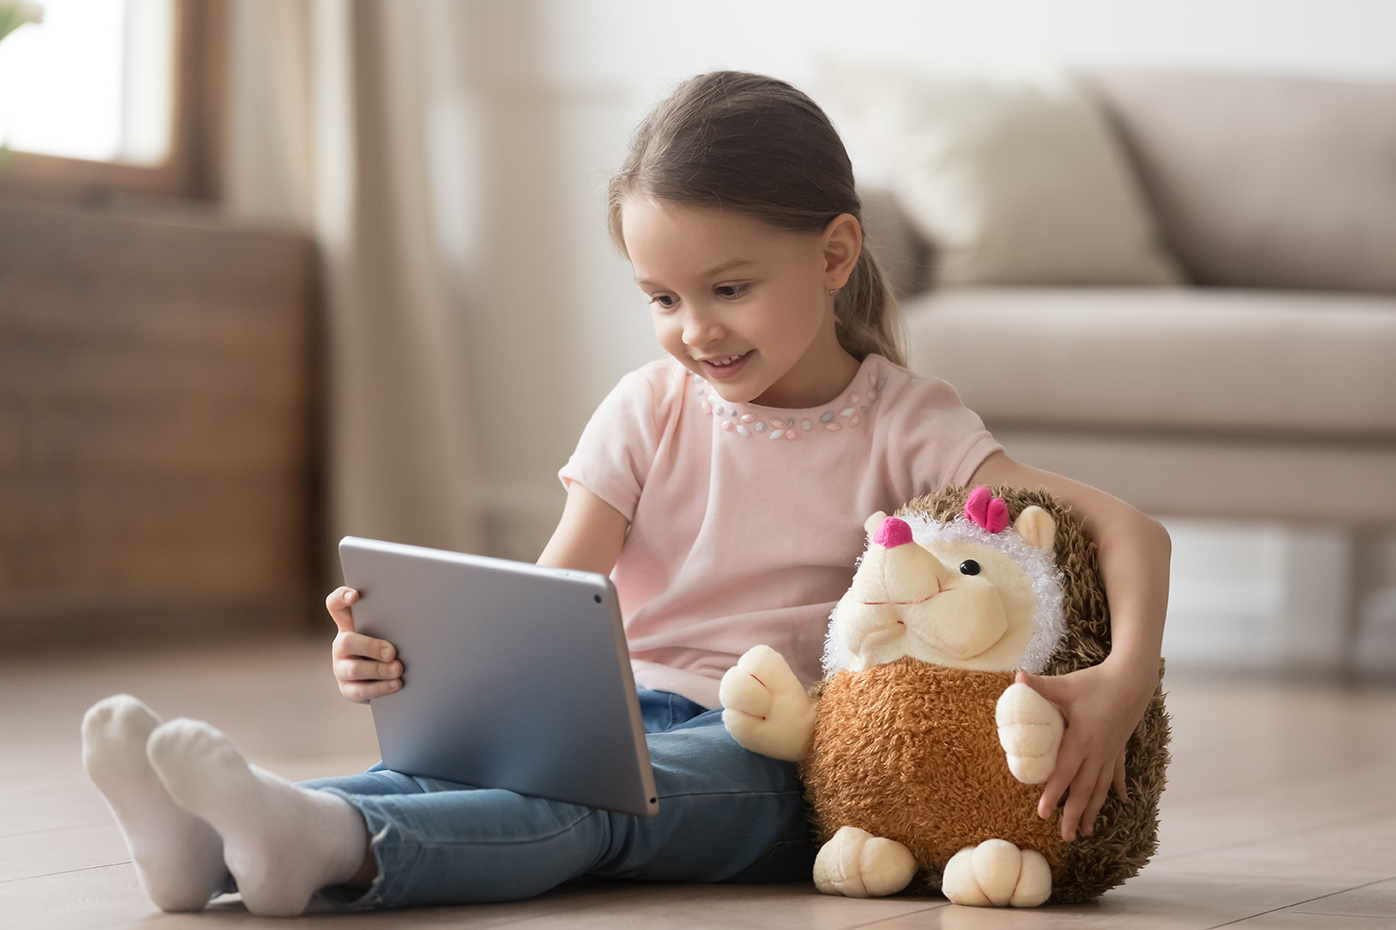 little girl and plush hedgehog looking at tablet